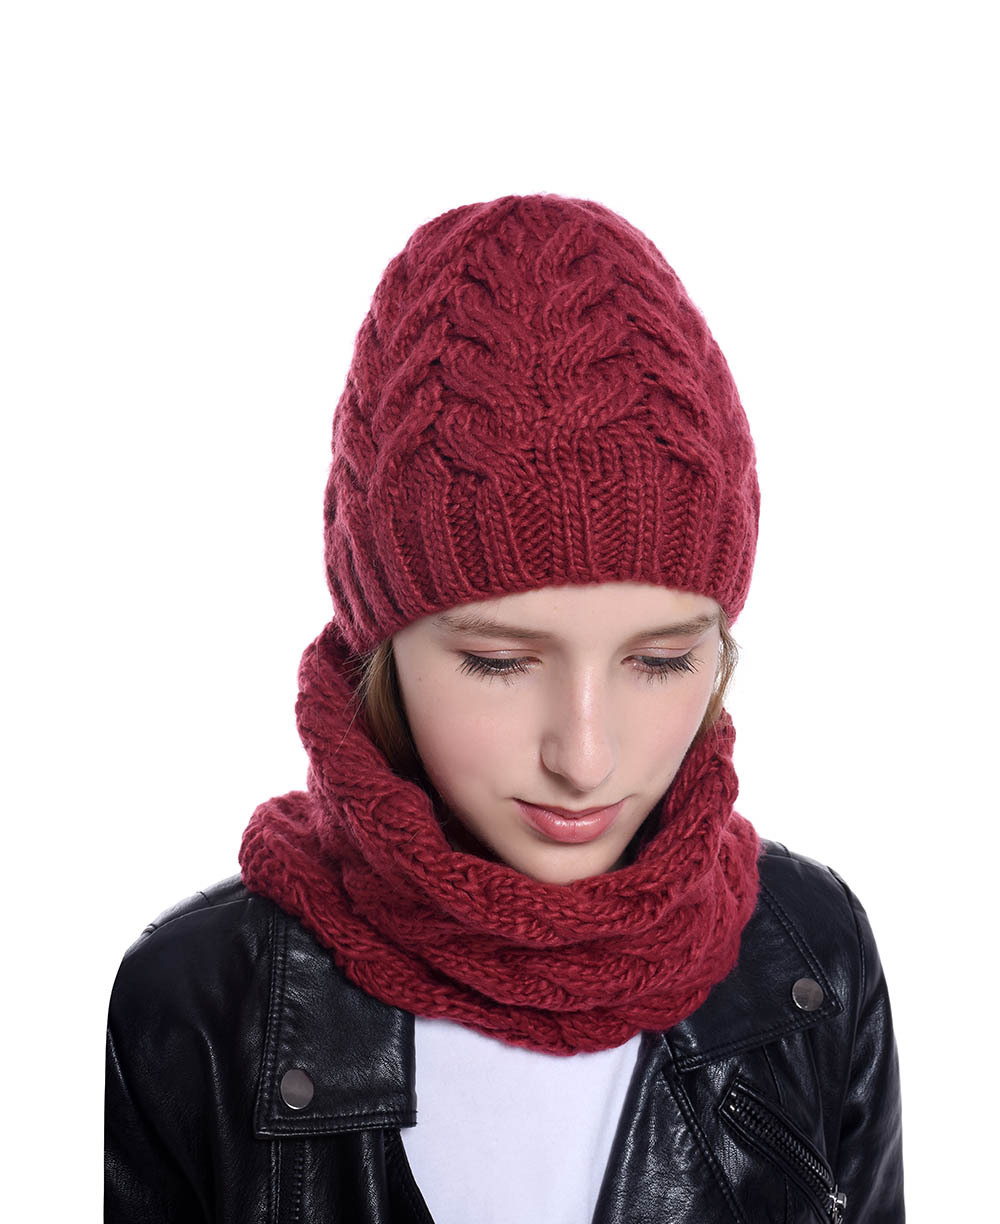 2019 Wool Knitted Thick Winter Women MS Skullies Beanies Ring Set Cap Hat Scarf Neck Ear Warm Outdoor Fashion Accessories-XMC-W6